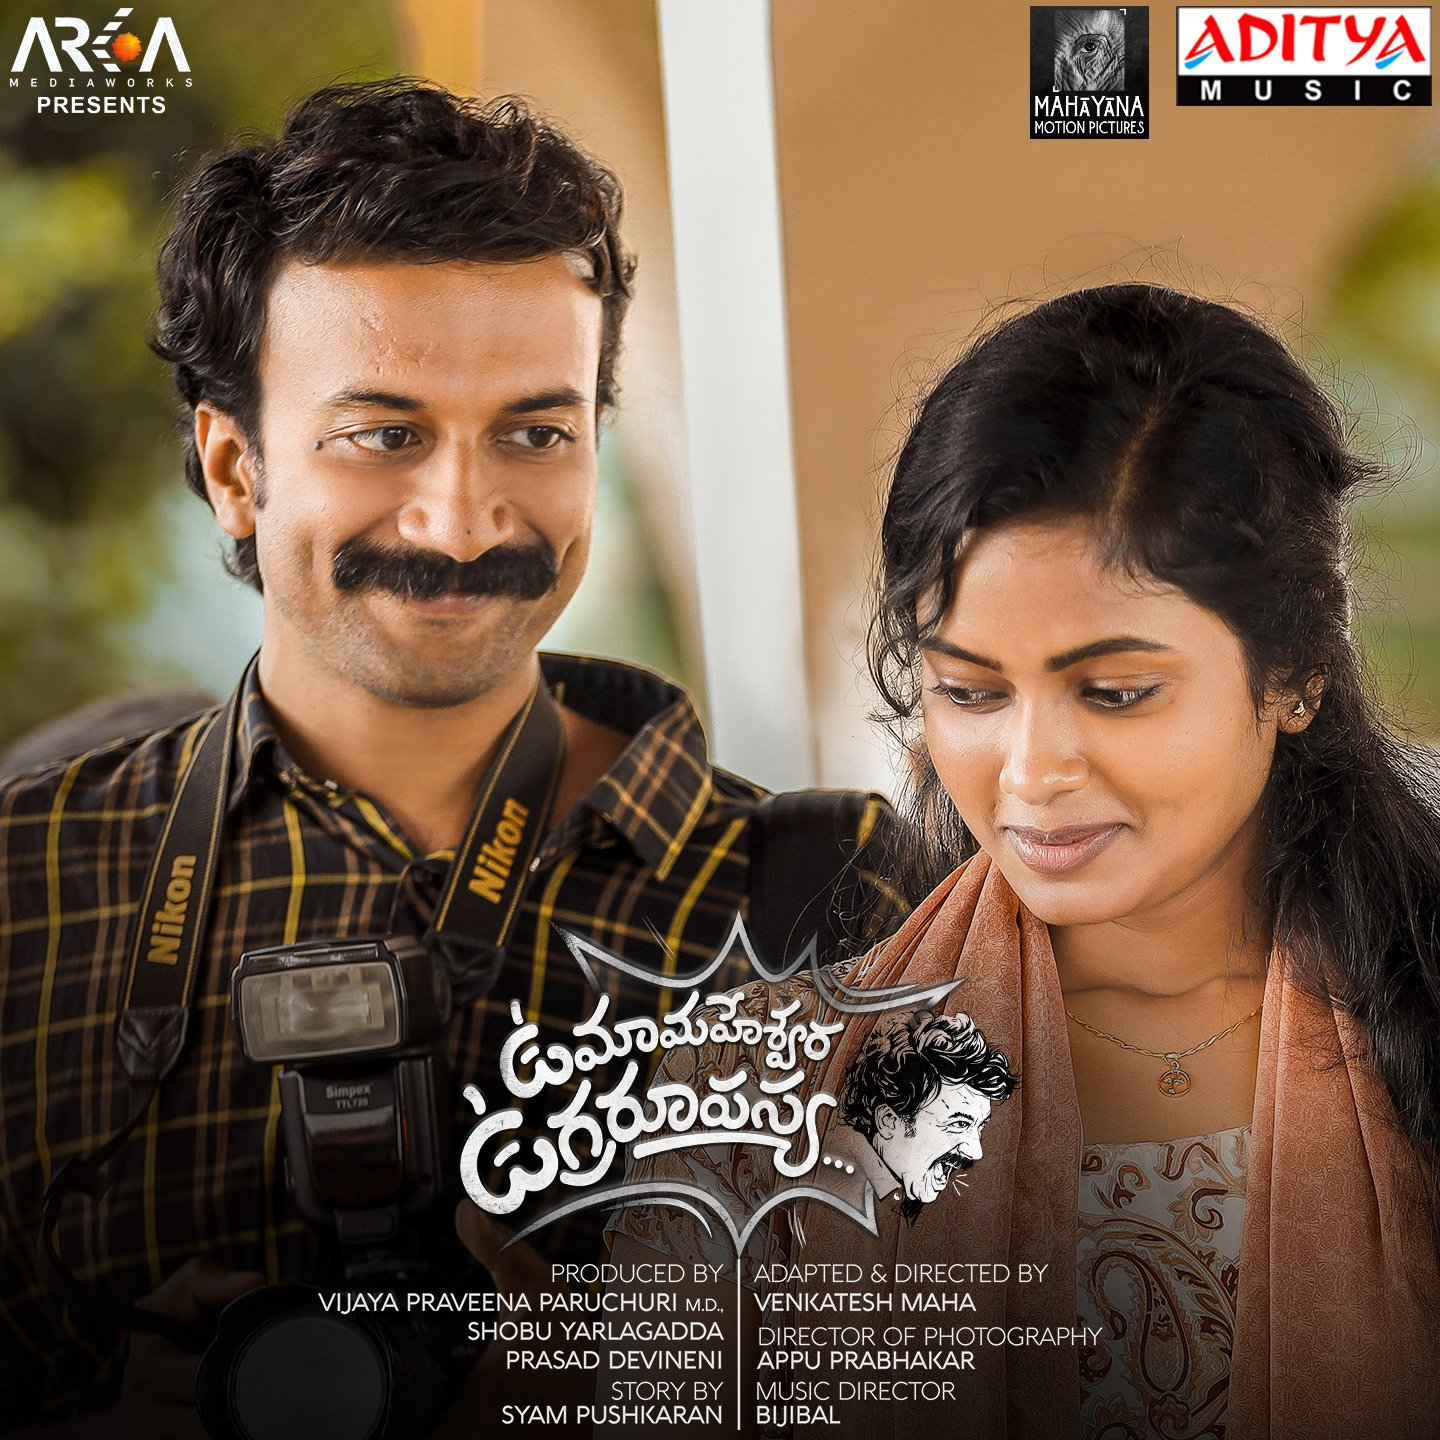 Uma Maheswara Ugra Roopasya 2020 Telugu 720p HDRip ESub 1.4GB Download